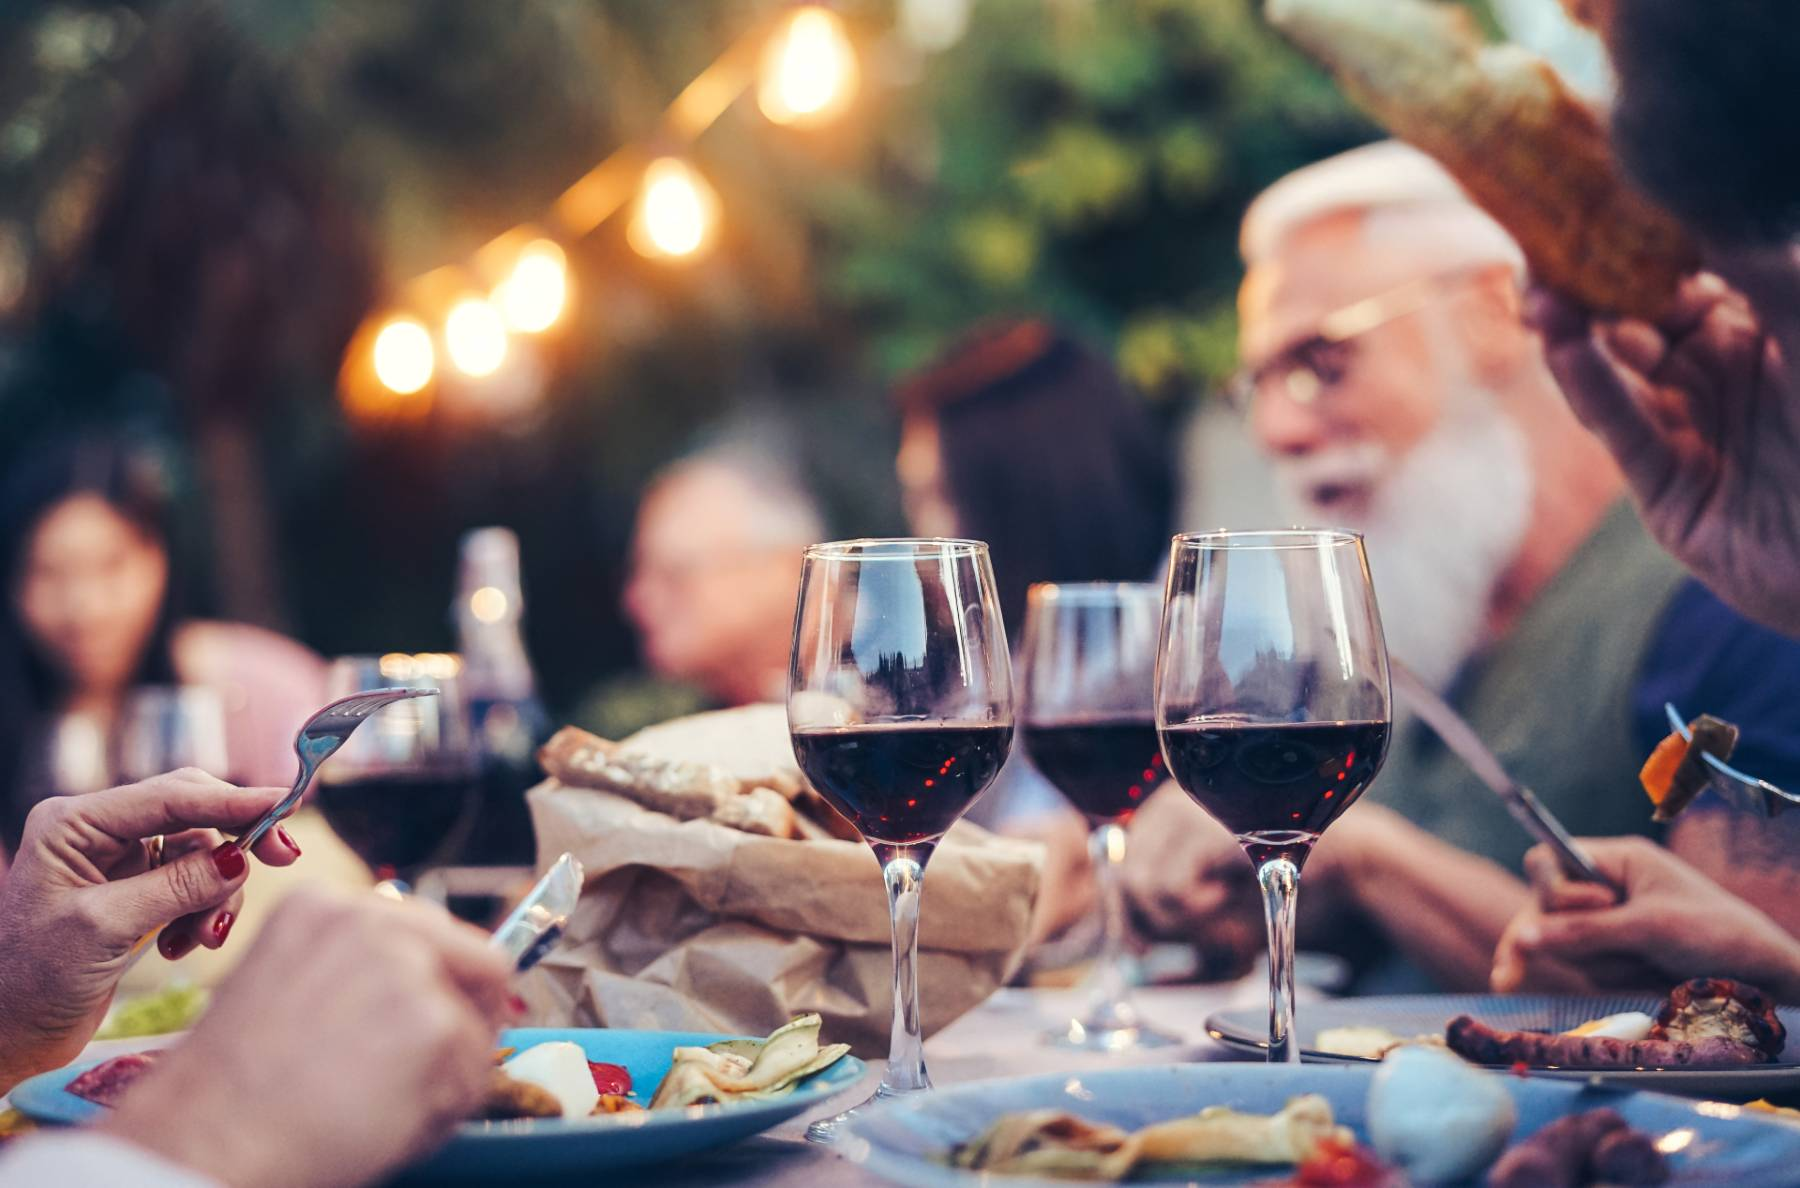 A group of people eat outside under string lights and drink red wine and eat a meal together